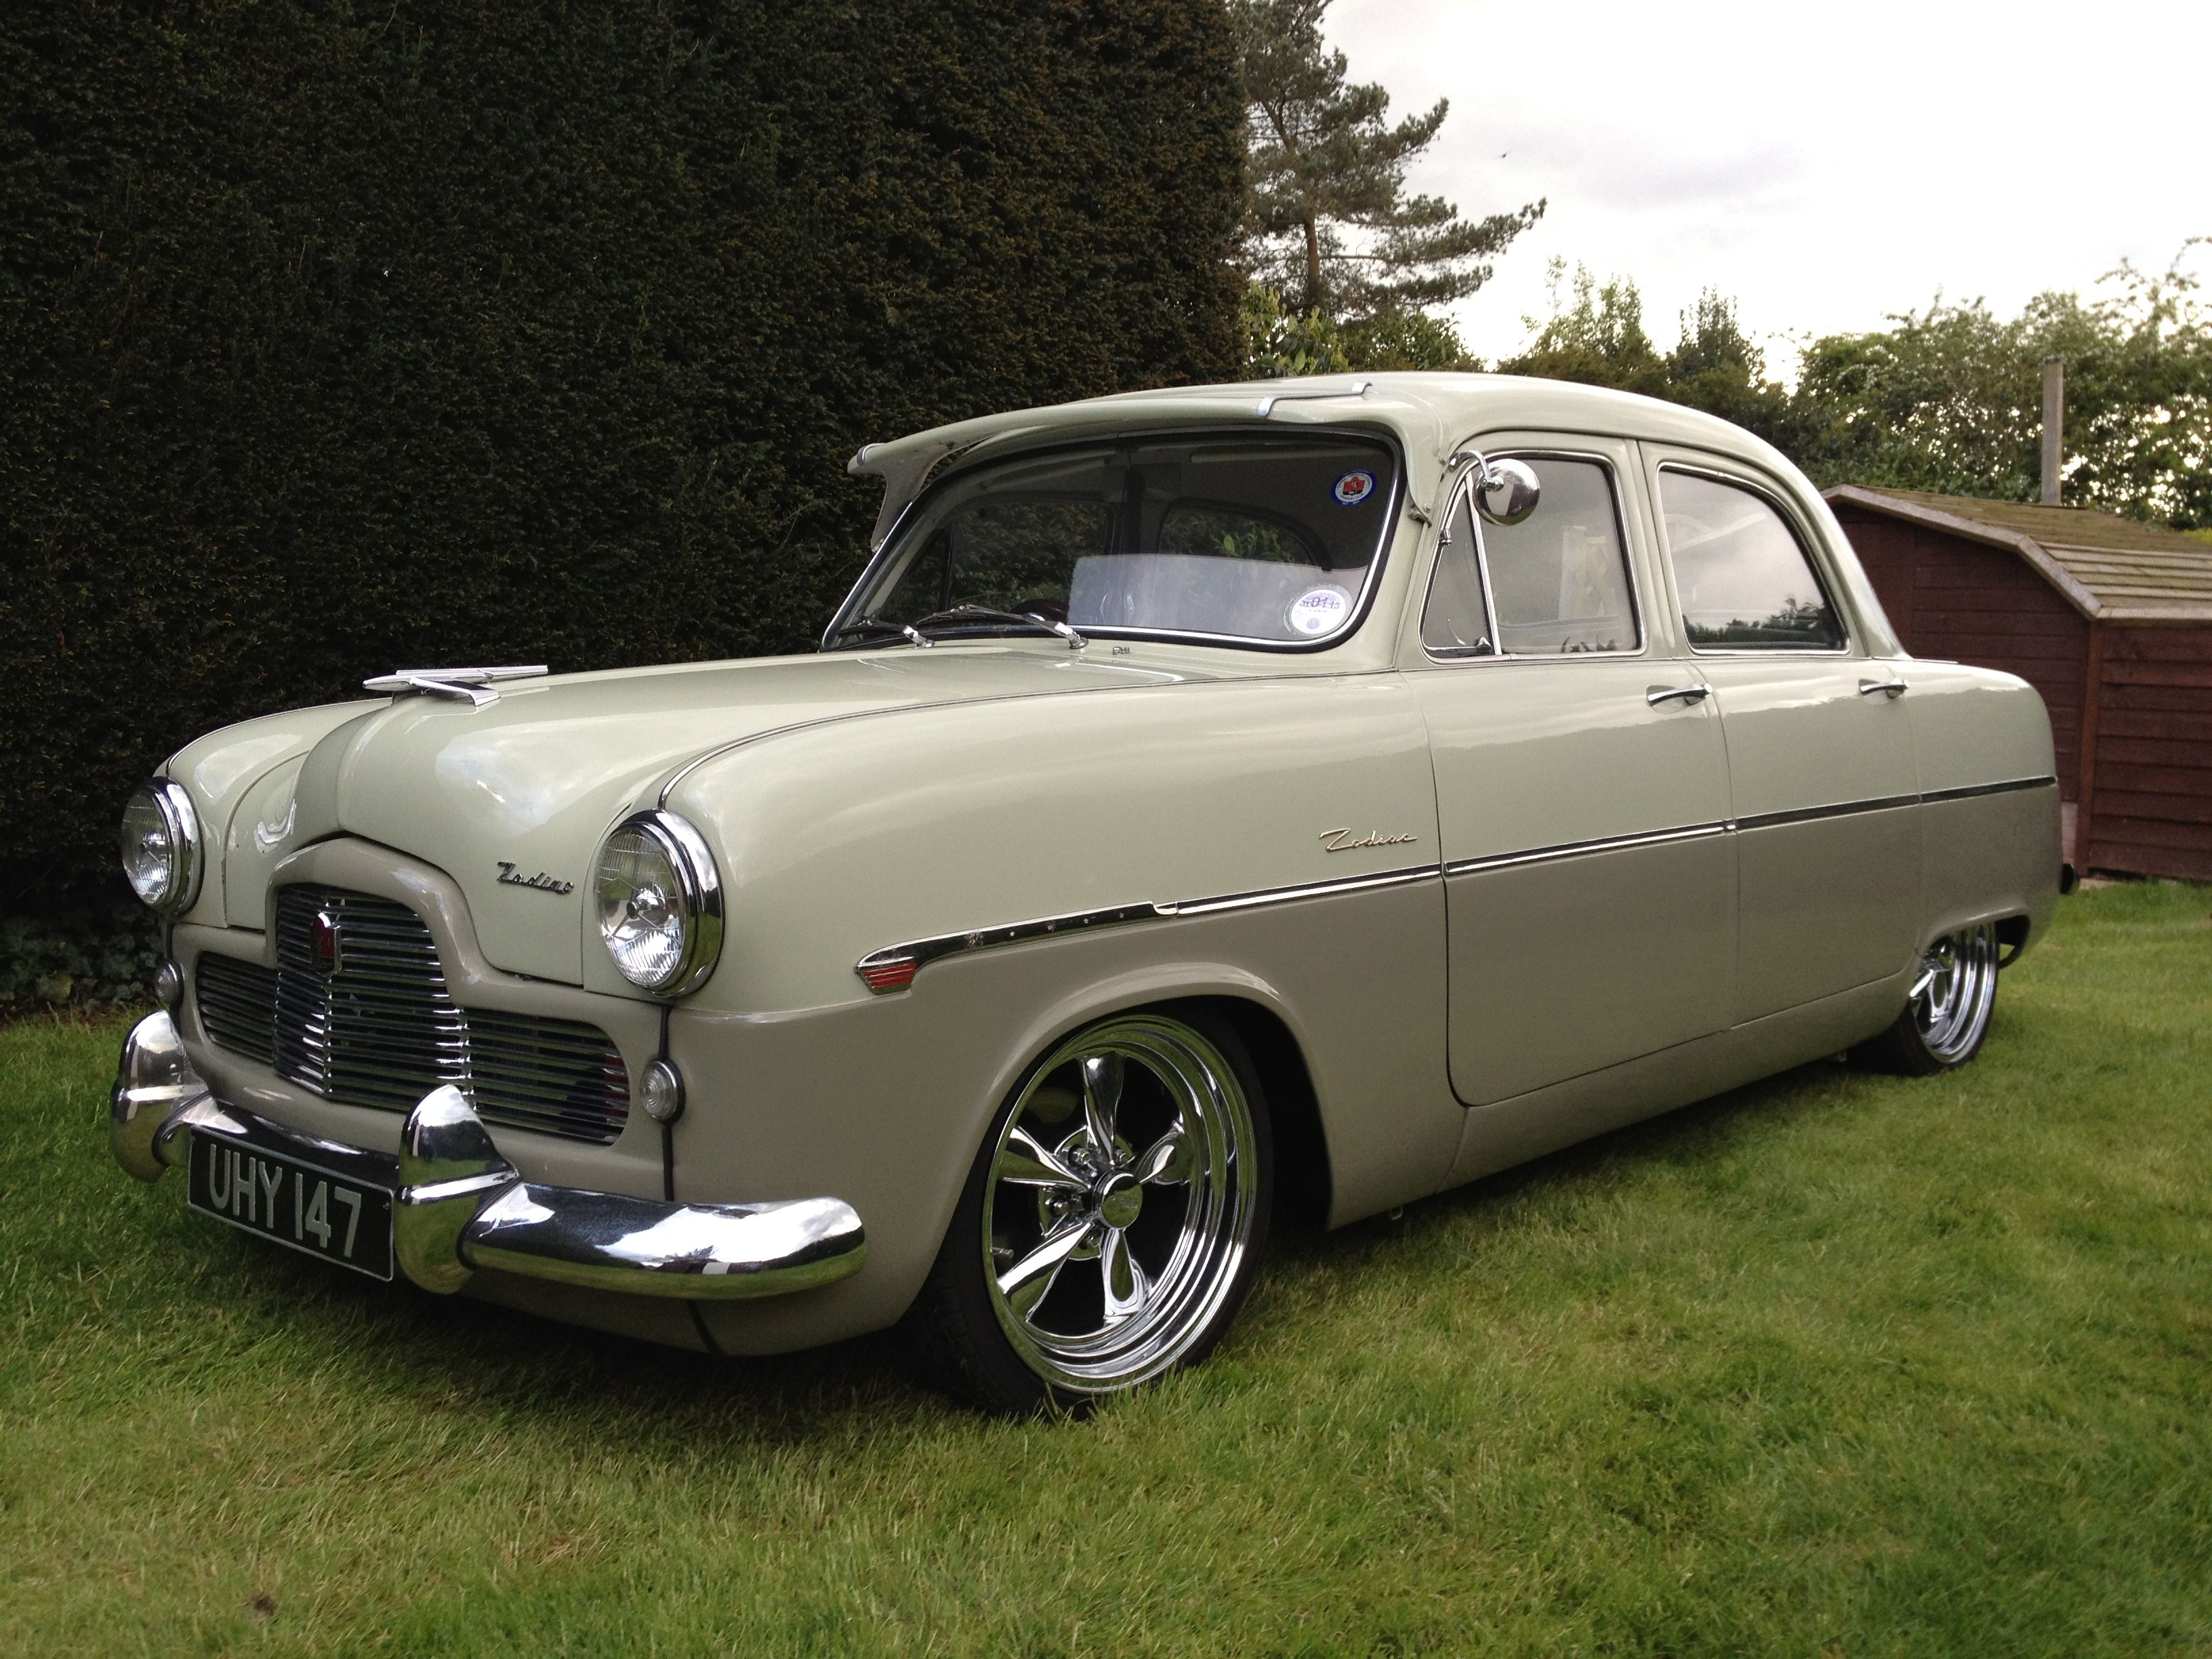 ford zephyr zodiac mk1 google search alan 39 s cars ford ford zephyr classic cars. Black Bedroom Furniture Sets. Home Design Ideas